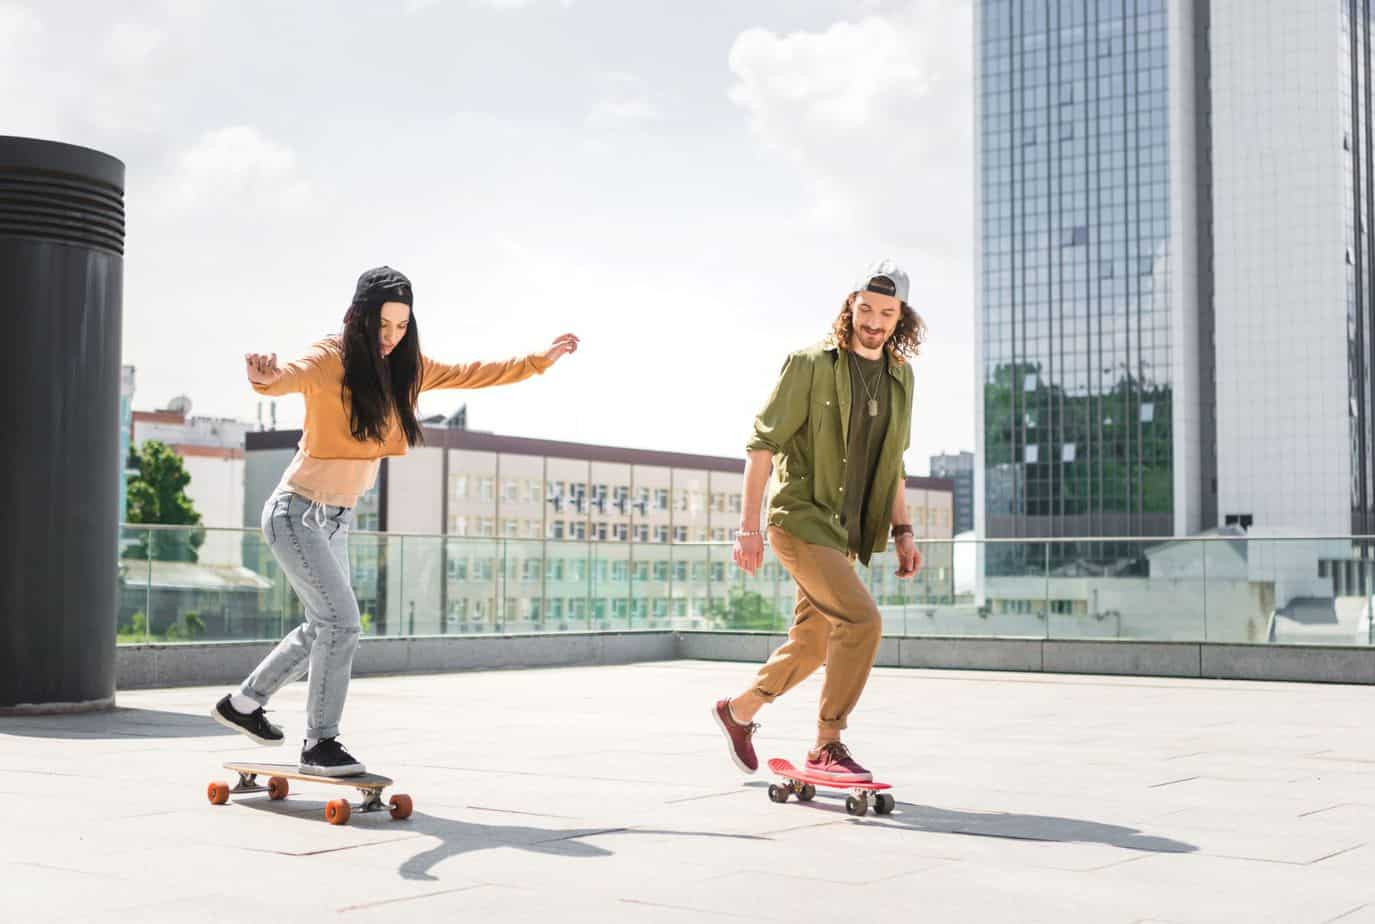 Buying Your First Longboard as a Beginner